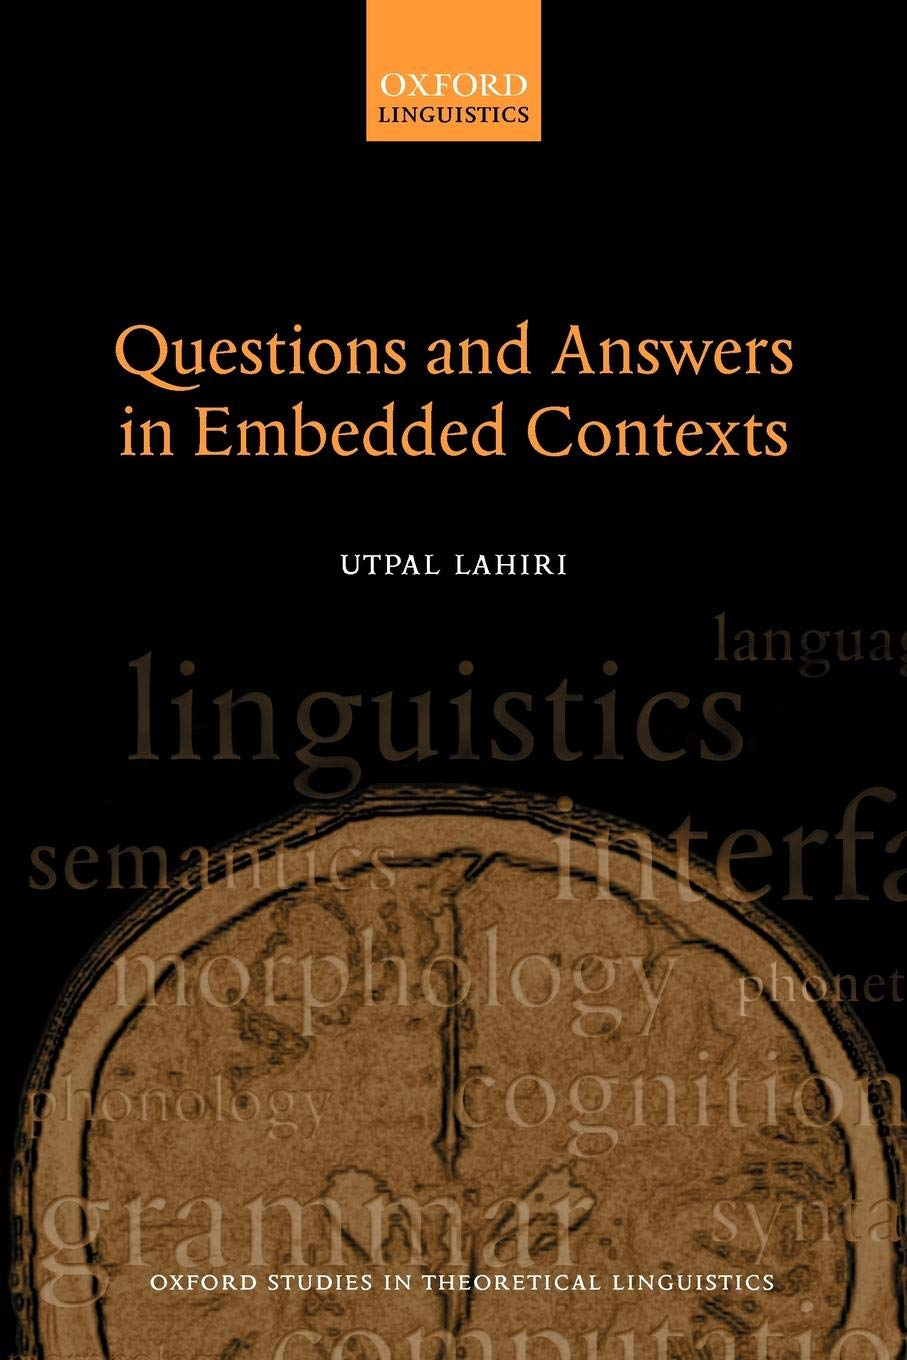 Questions and Answers in Embedded Contexts (Oxford Studies